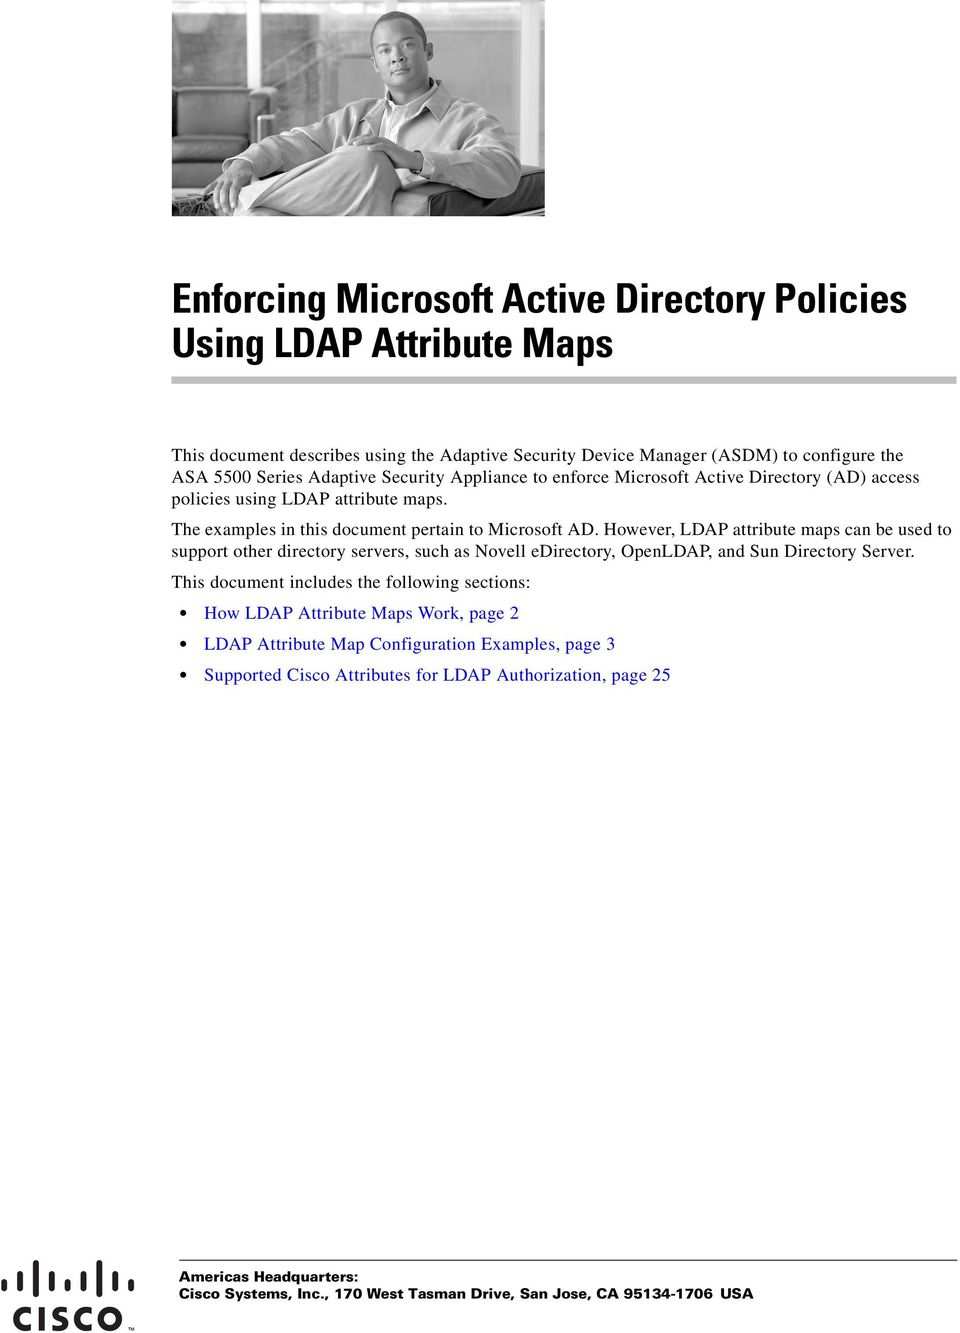 However, LDAP attribute maps can be used to support other directory servers, such as Novell edirectory, OpenLDAP, and Sun Directory Server.